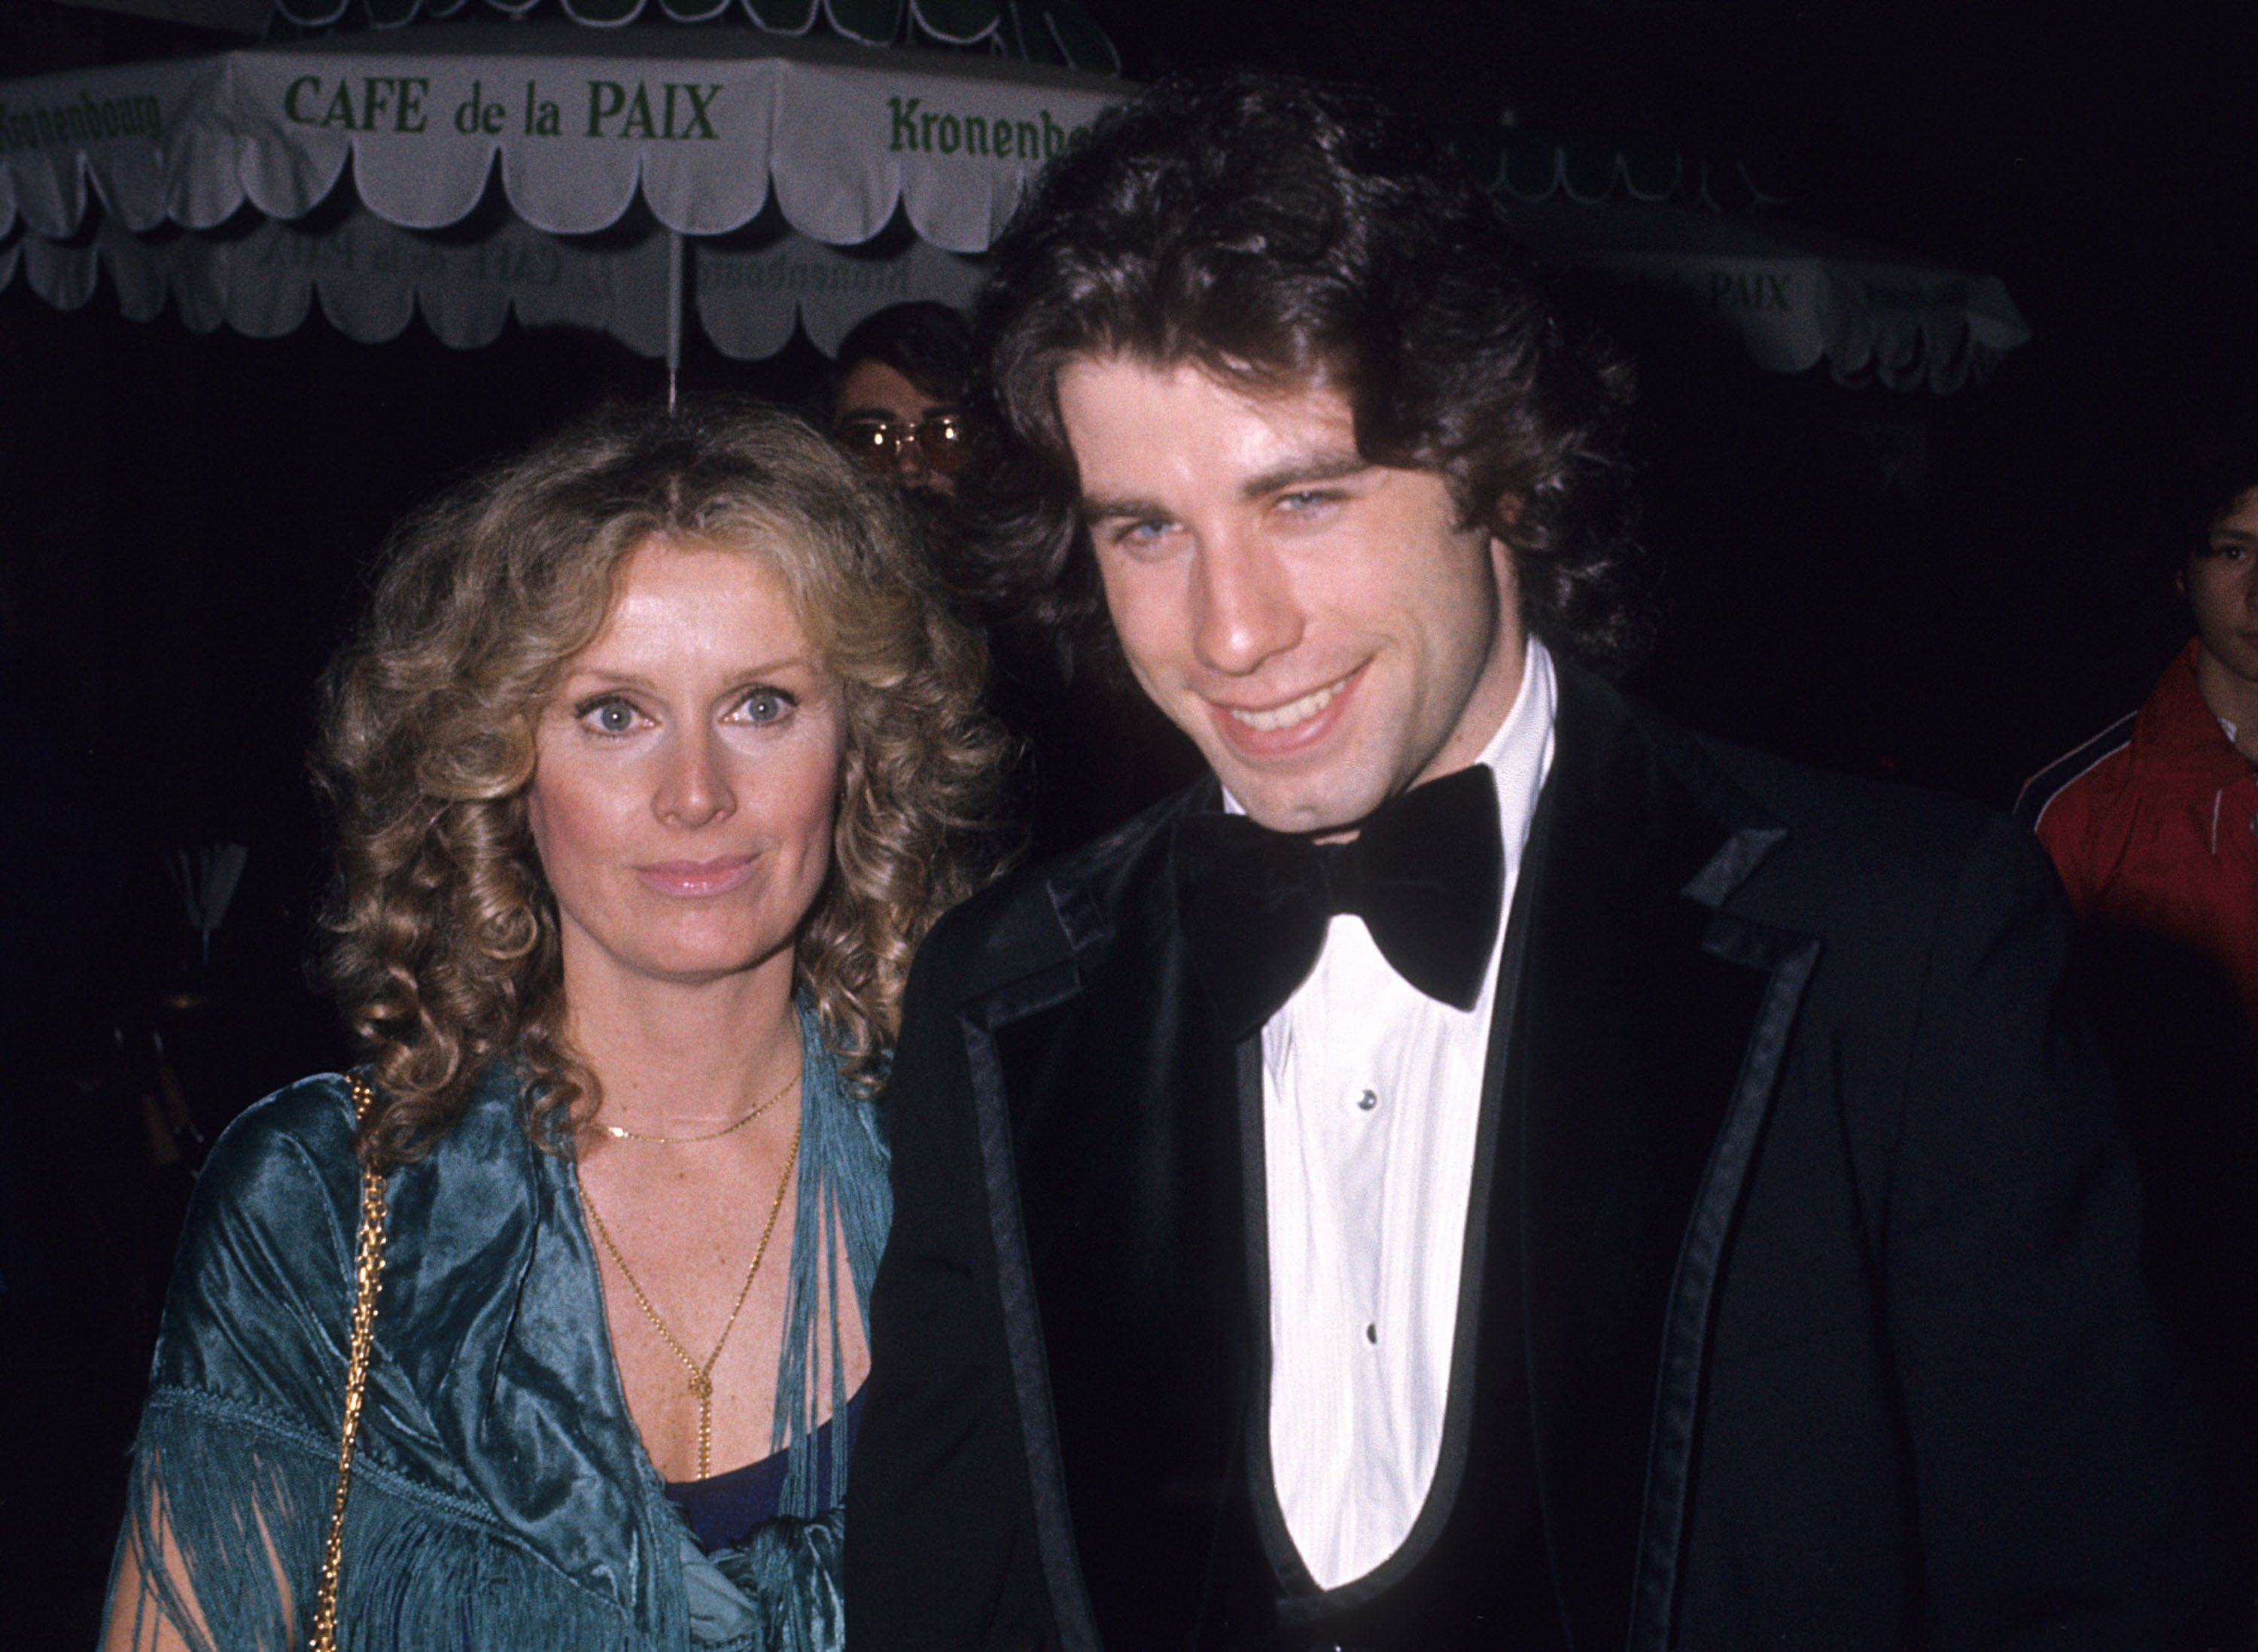 John Travolta and Diana Hyland sighting in LA on December 8th 1976   Source: Getty Images